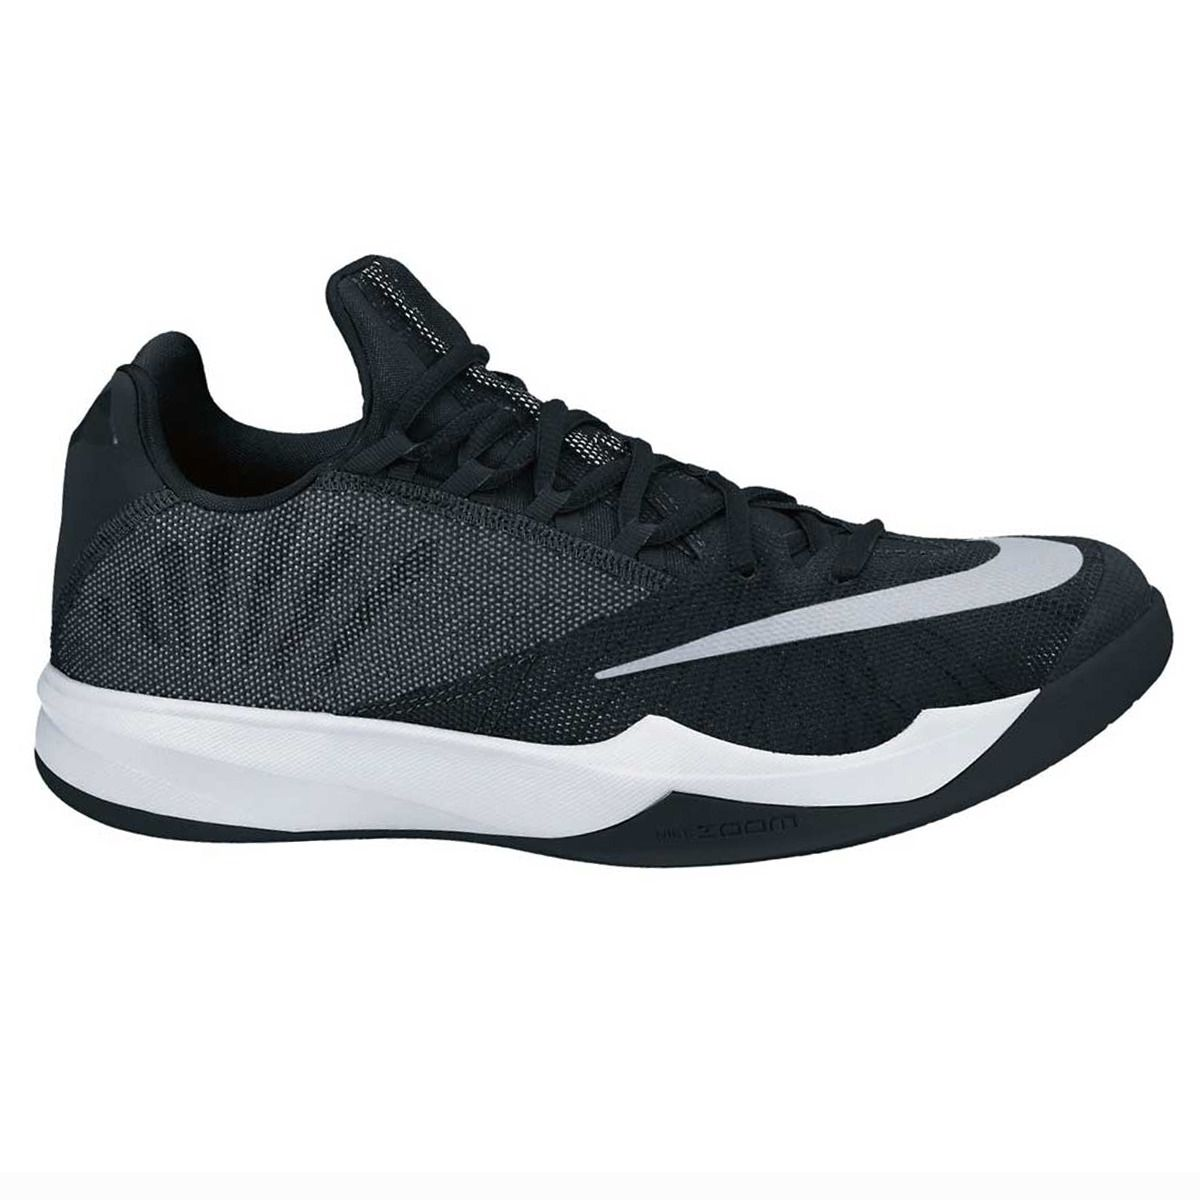 nike zoom run the one men 39 s basketball shoes rebel. Black Bedroom Furniture Sets. Home Design Ideas